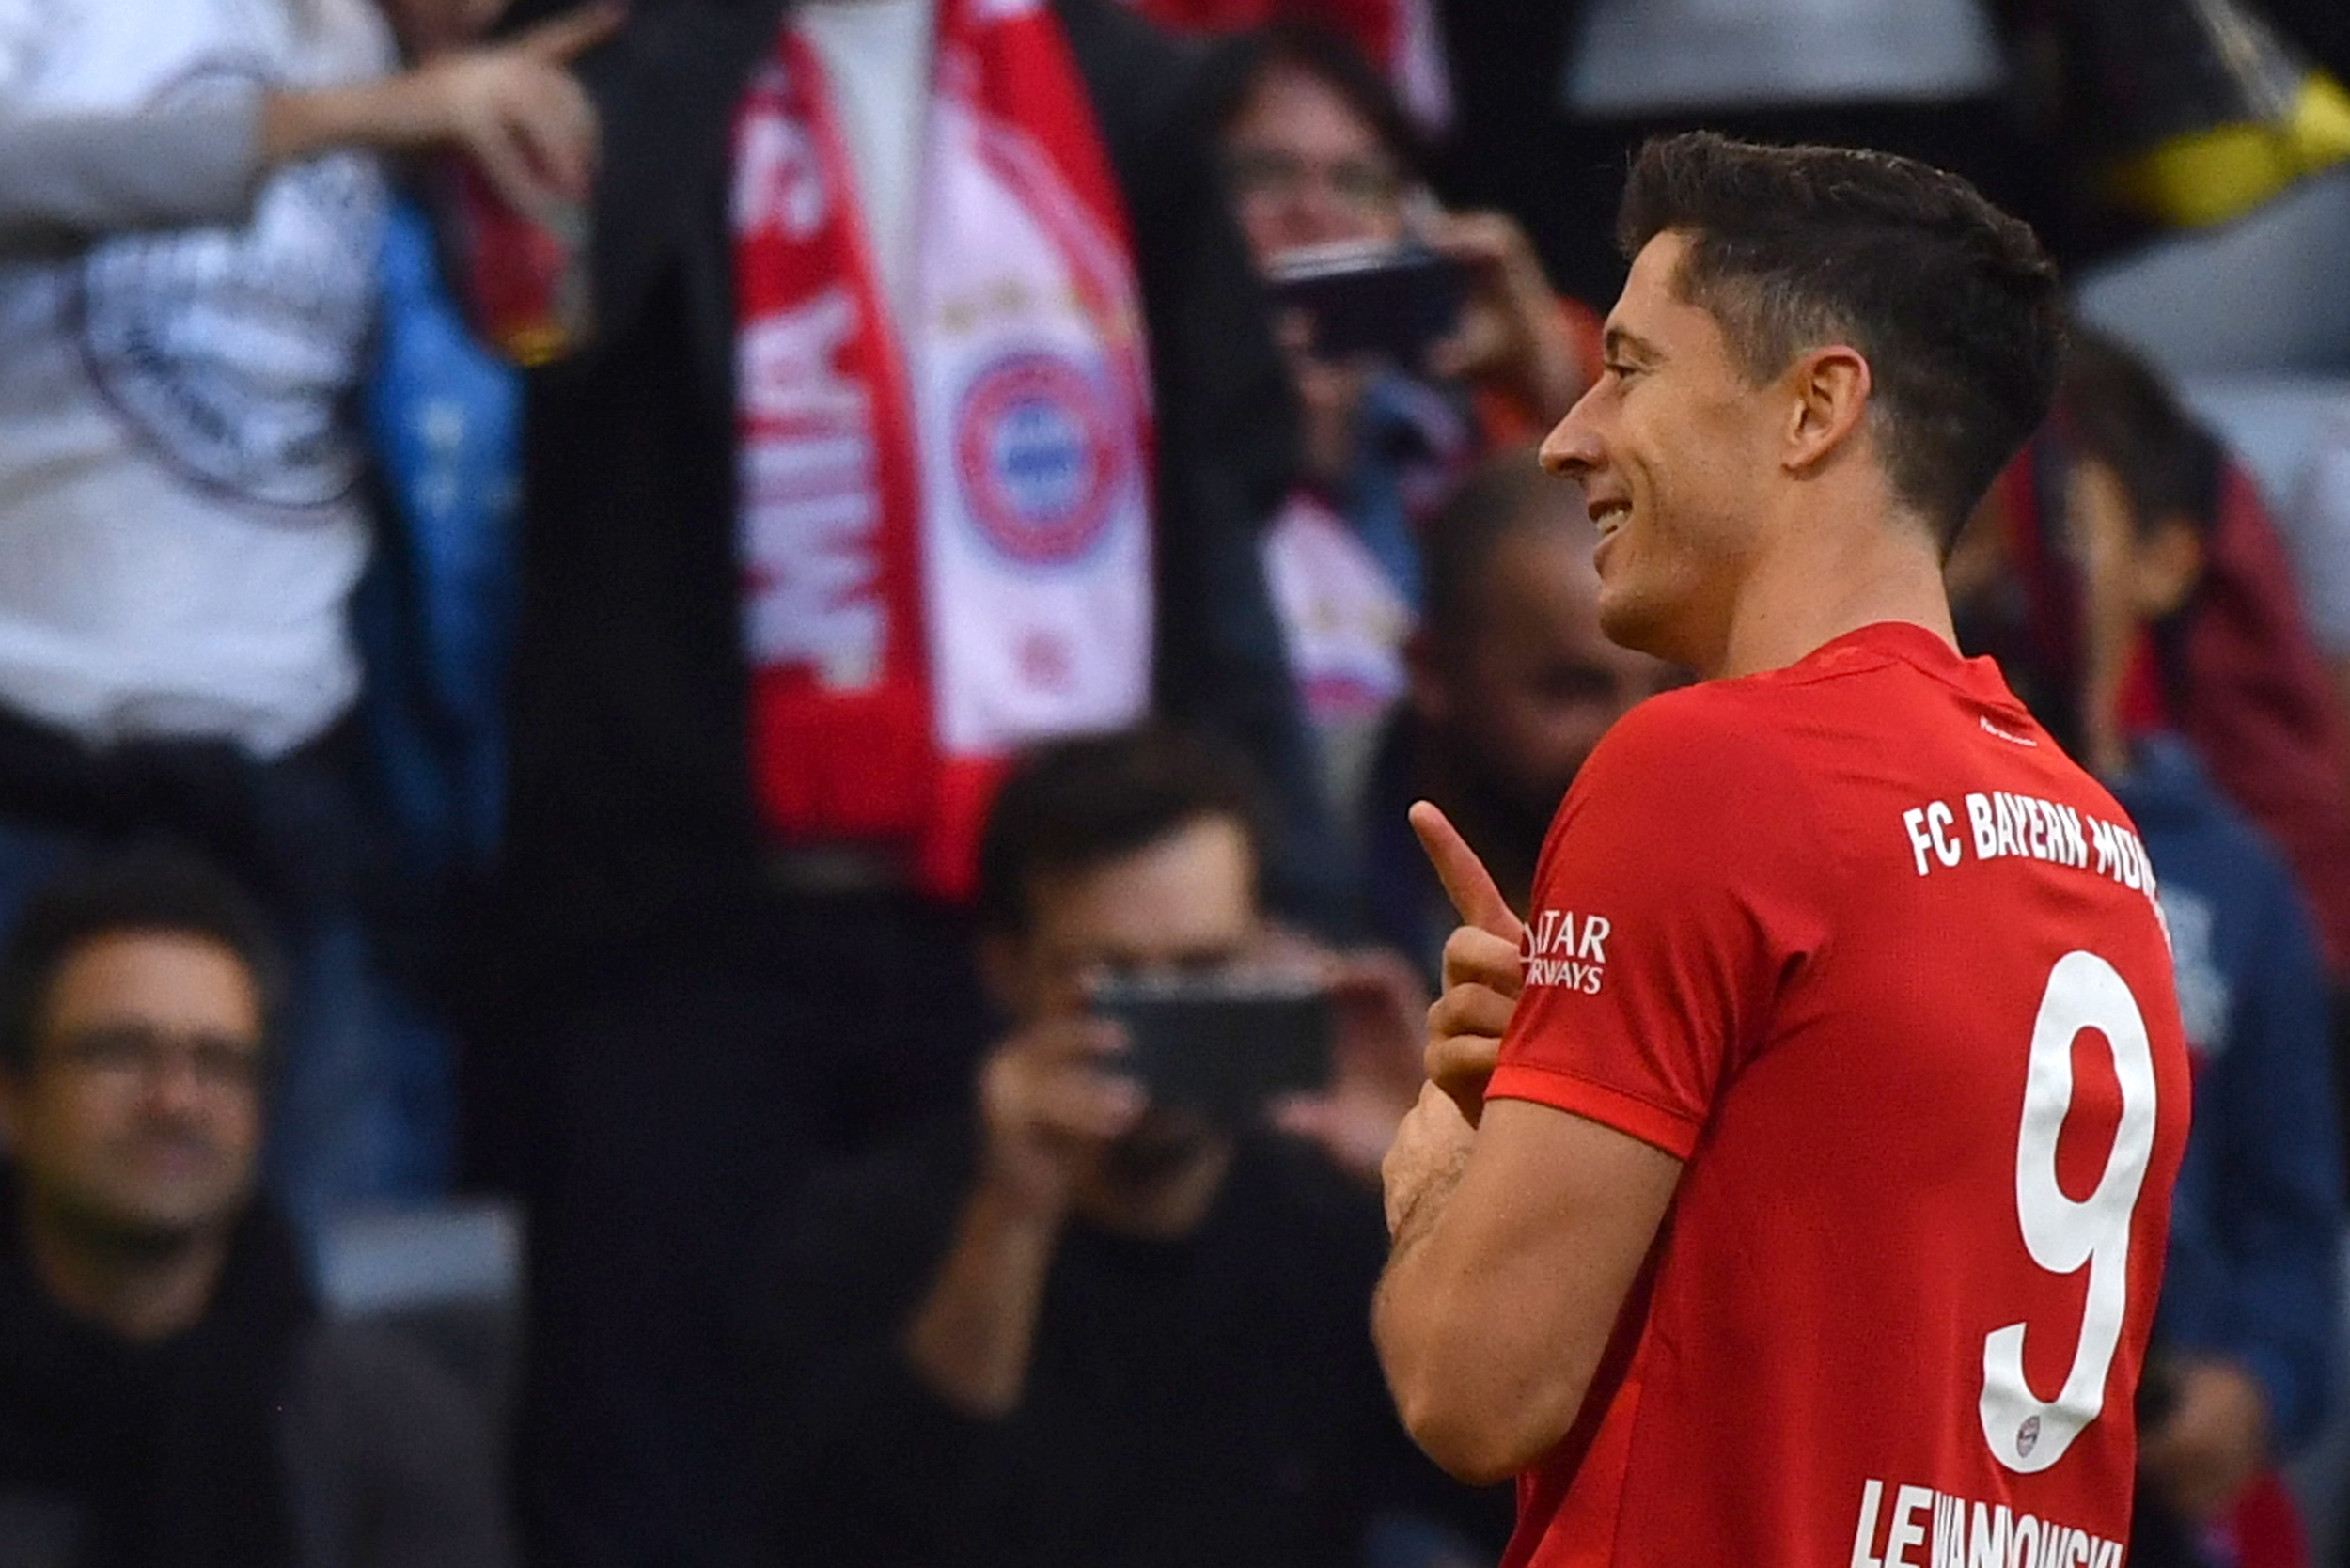 UEFA CL: A look at this season's top scorers 2019/20